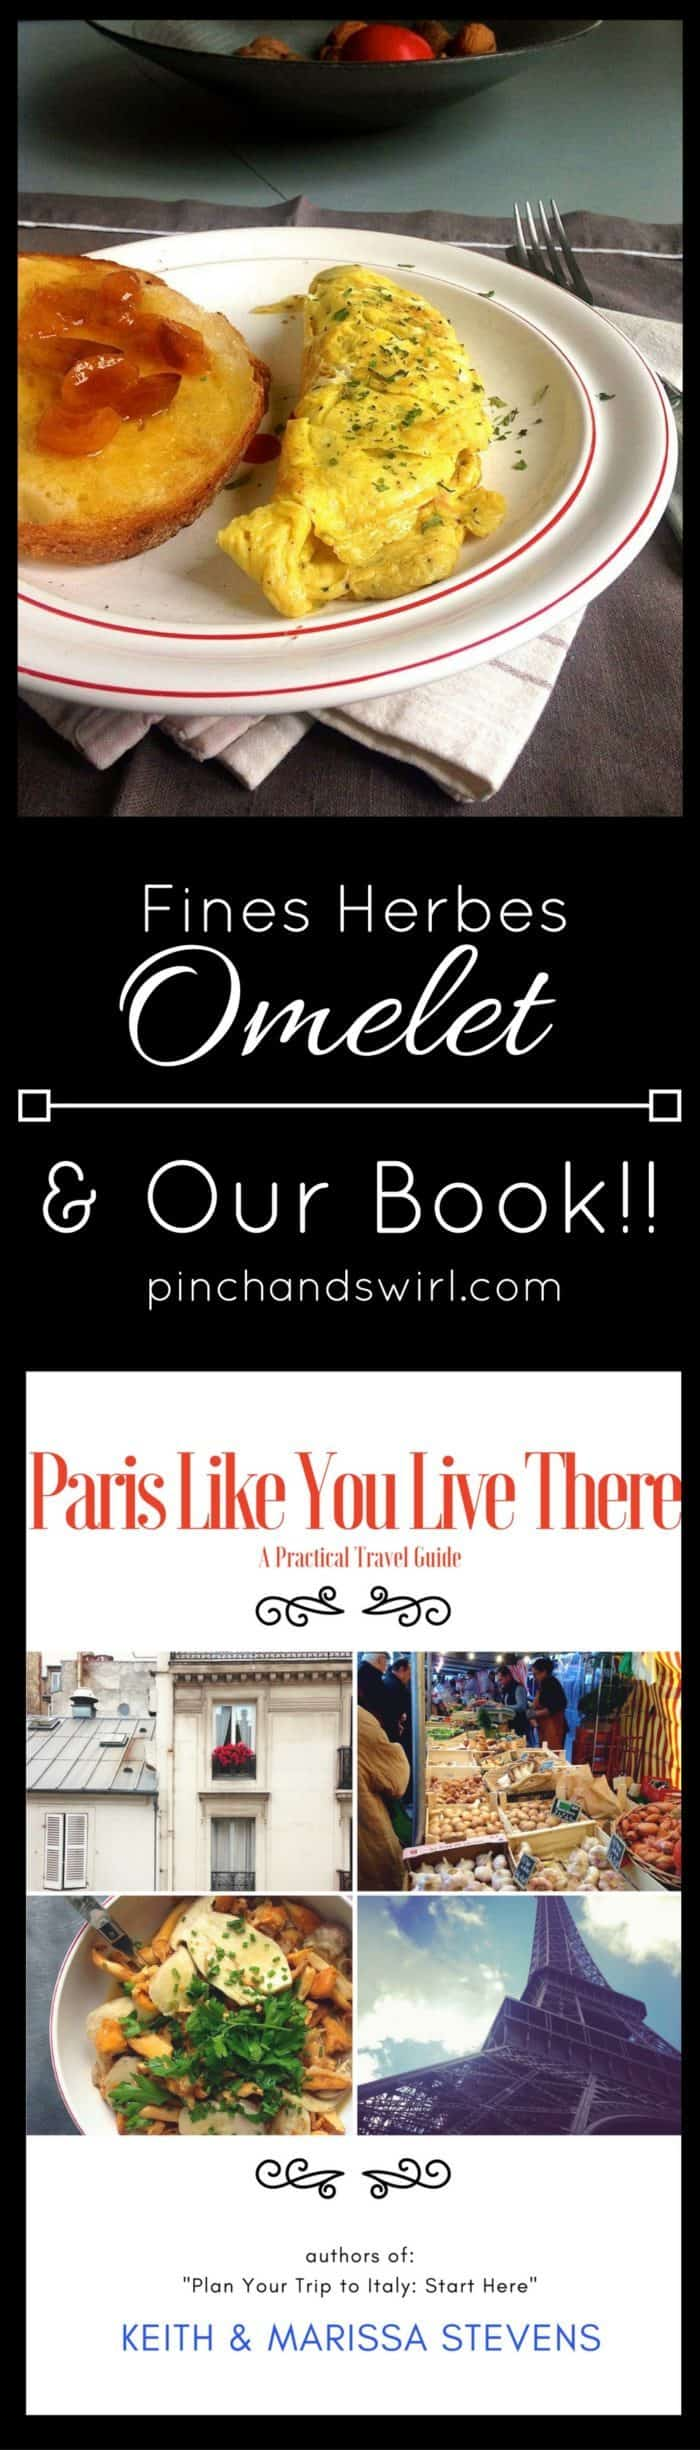 Fines Herbes Omelet Recipe - a classic French omelet + a Paris Travel Guide